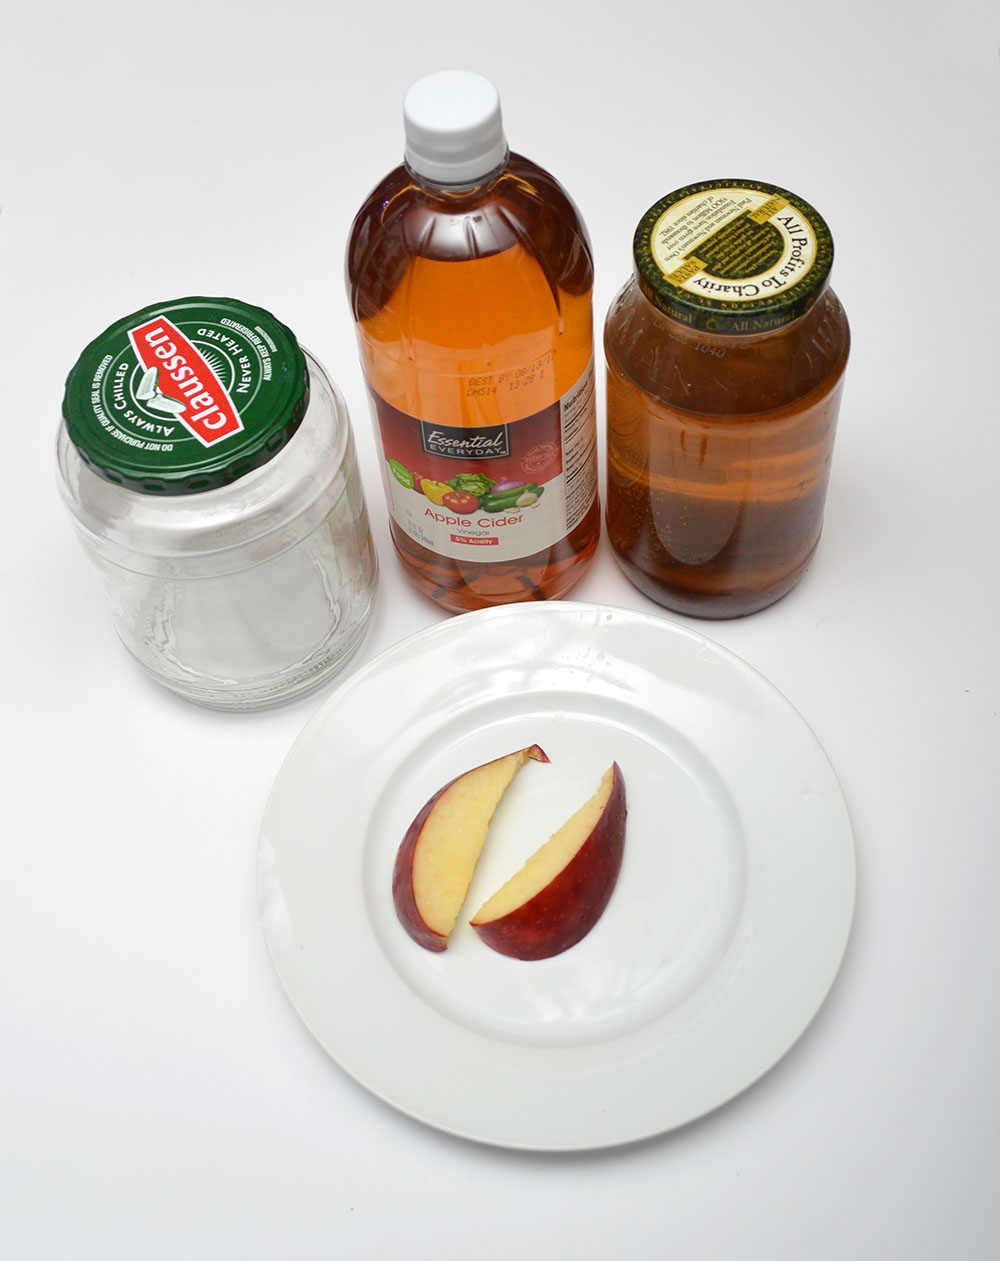 The raw materials to make a new culture - clean glass jar, apple cider vinegar, a slice of apple, and a starter culture.